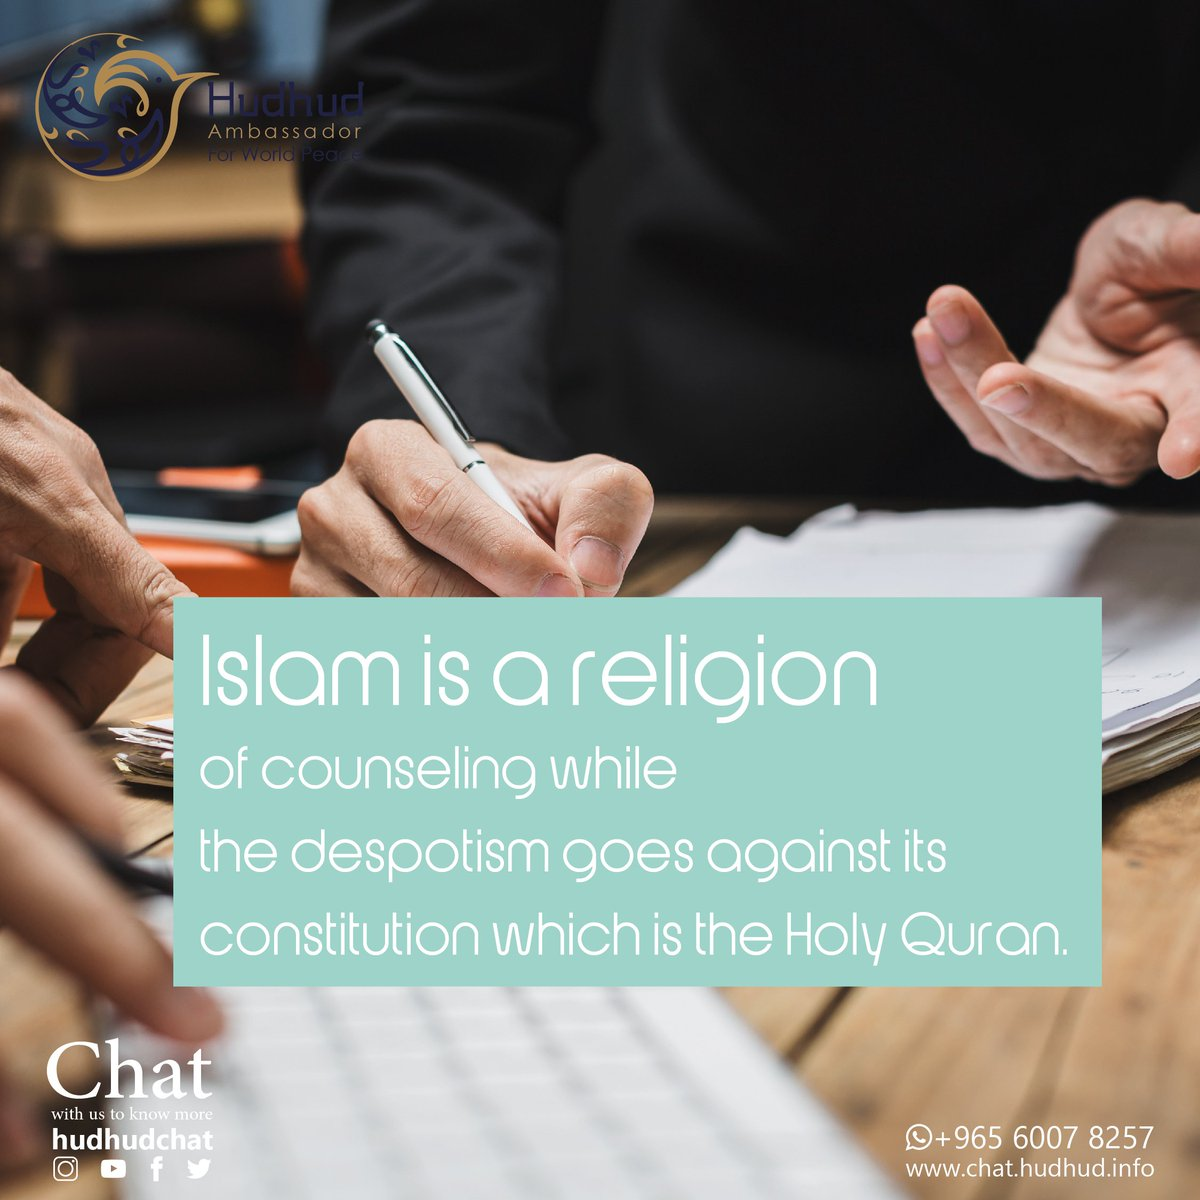 Islam is a religion of counseling while the despotism goes against its constitution which is the Holy Quran.  #HudhudChat #Islam<br>http://pic.twitter.com/qaTLQCCZlJ